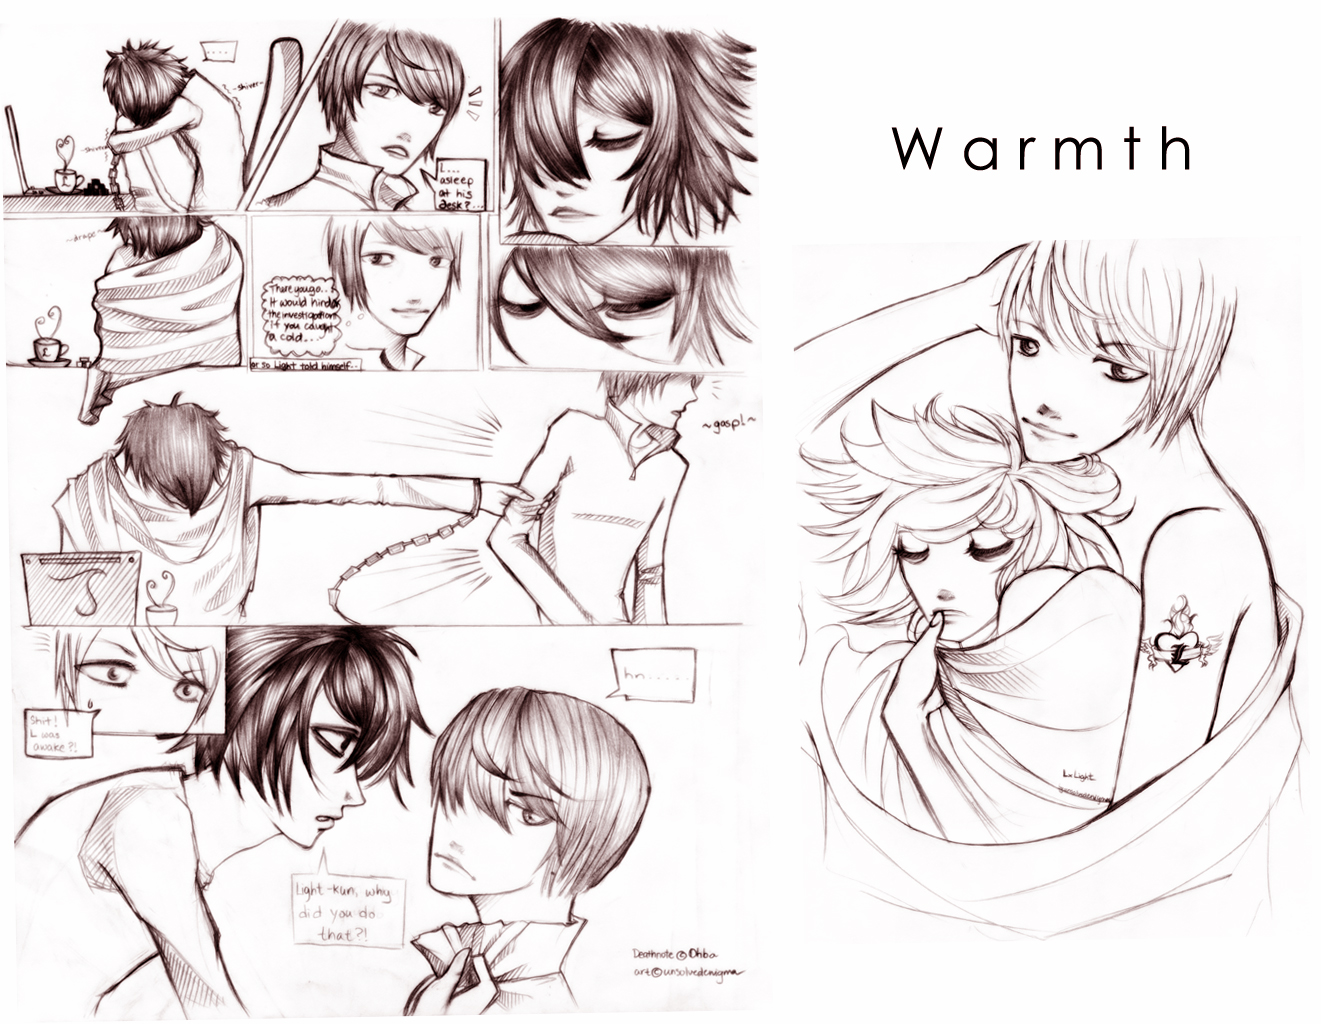 Deathnote:LxLight: Warmth by unsolvedenigma on DeviantArt